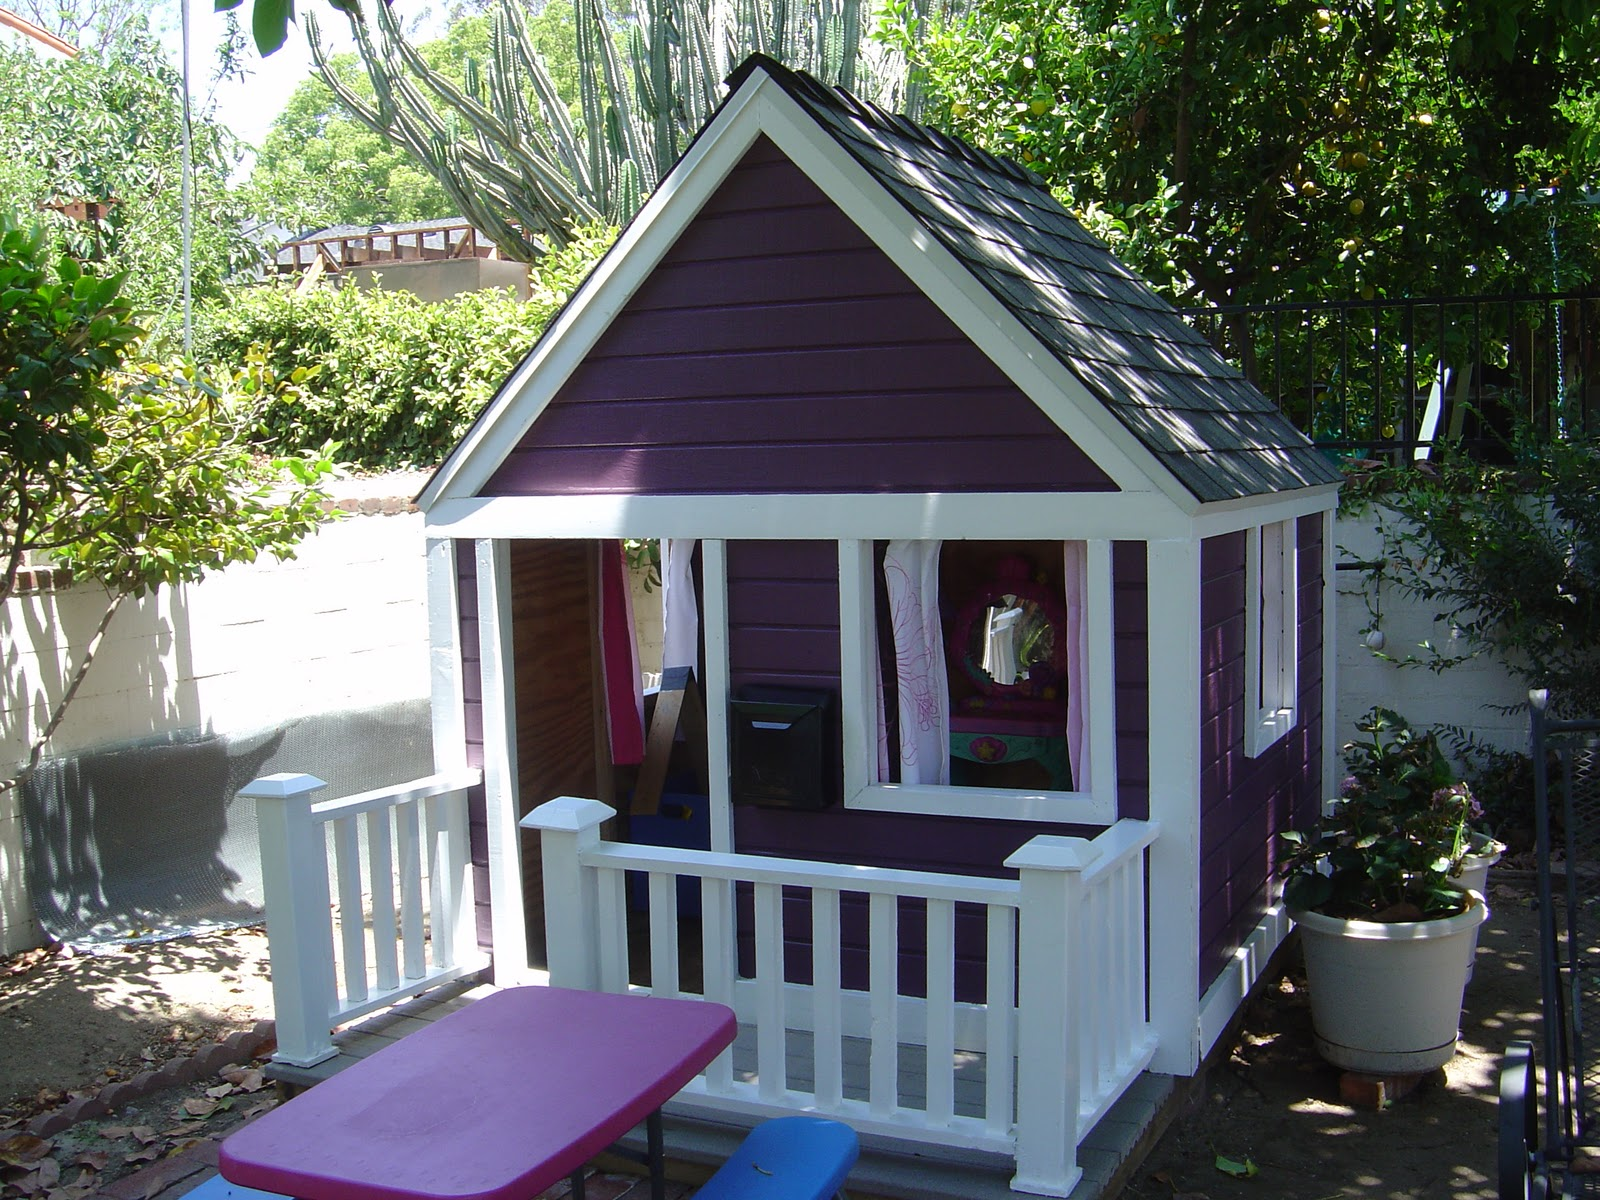 Diy girls and boys playhouse designs for backyard bahay ofw for Kids outdoor playhouse